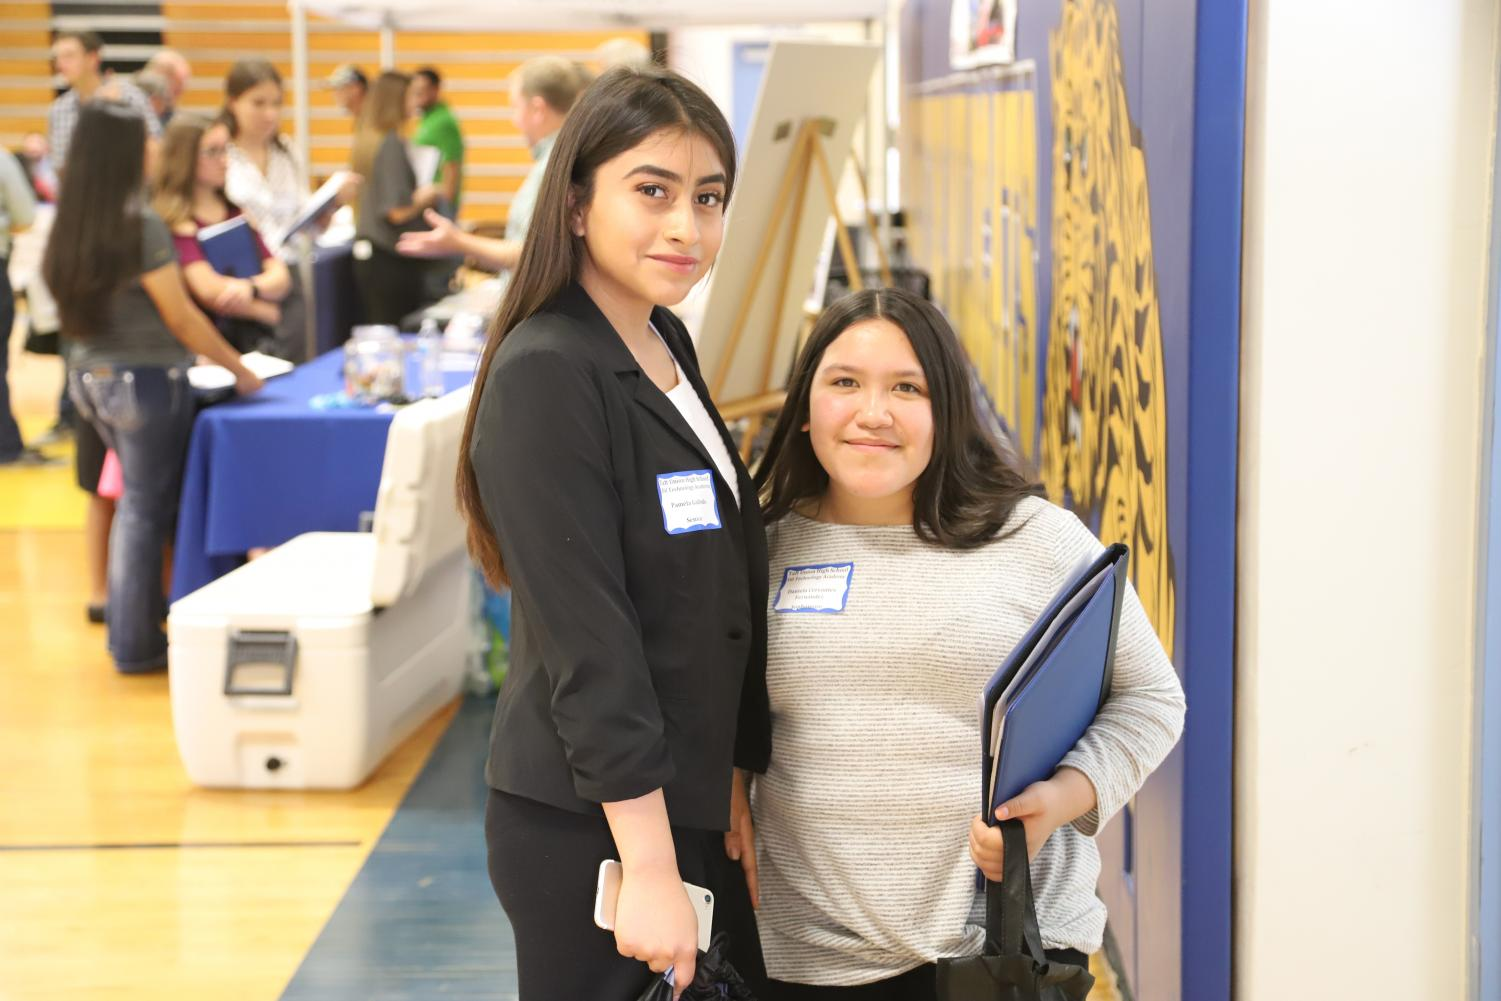 Oil Tech students (on left) Pamela Galindo and Daniela Cervantes (on right) walk around the gym and interview companies.